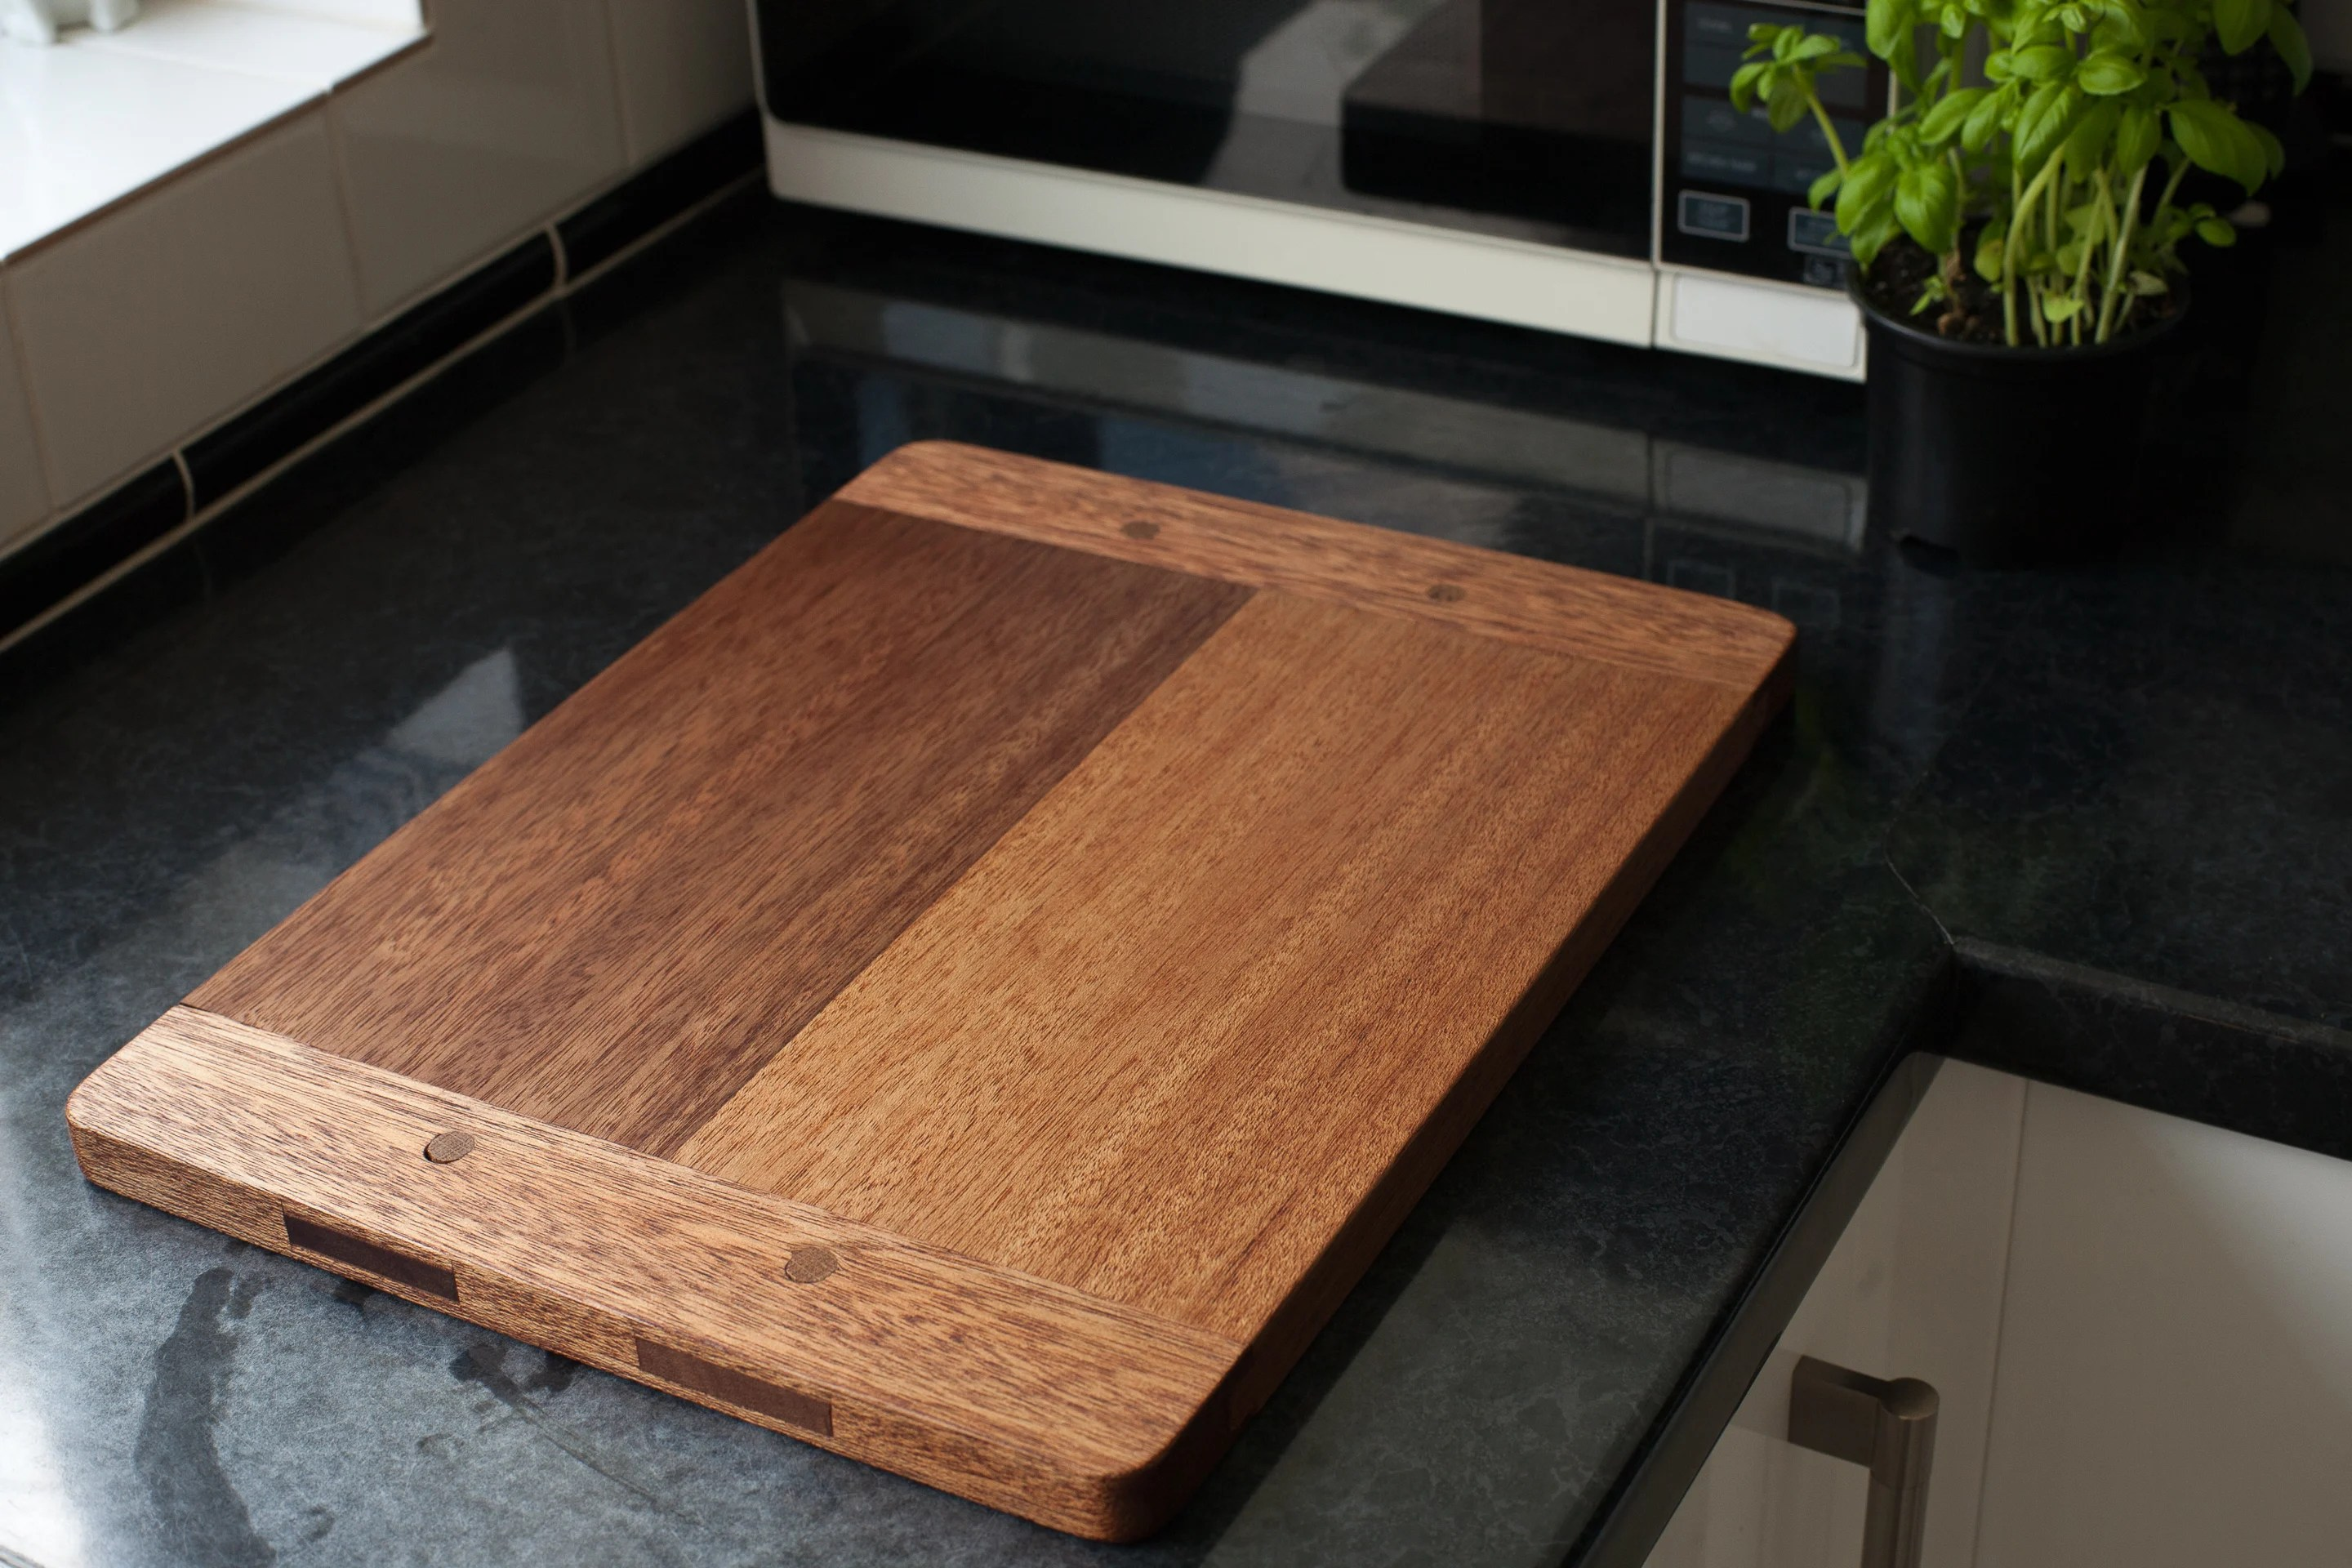 Breadboard End Cutting Board made using Meranti with Oak pins, finished with de-waxed shellac sanding sealer then tung oil.